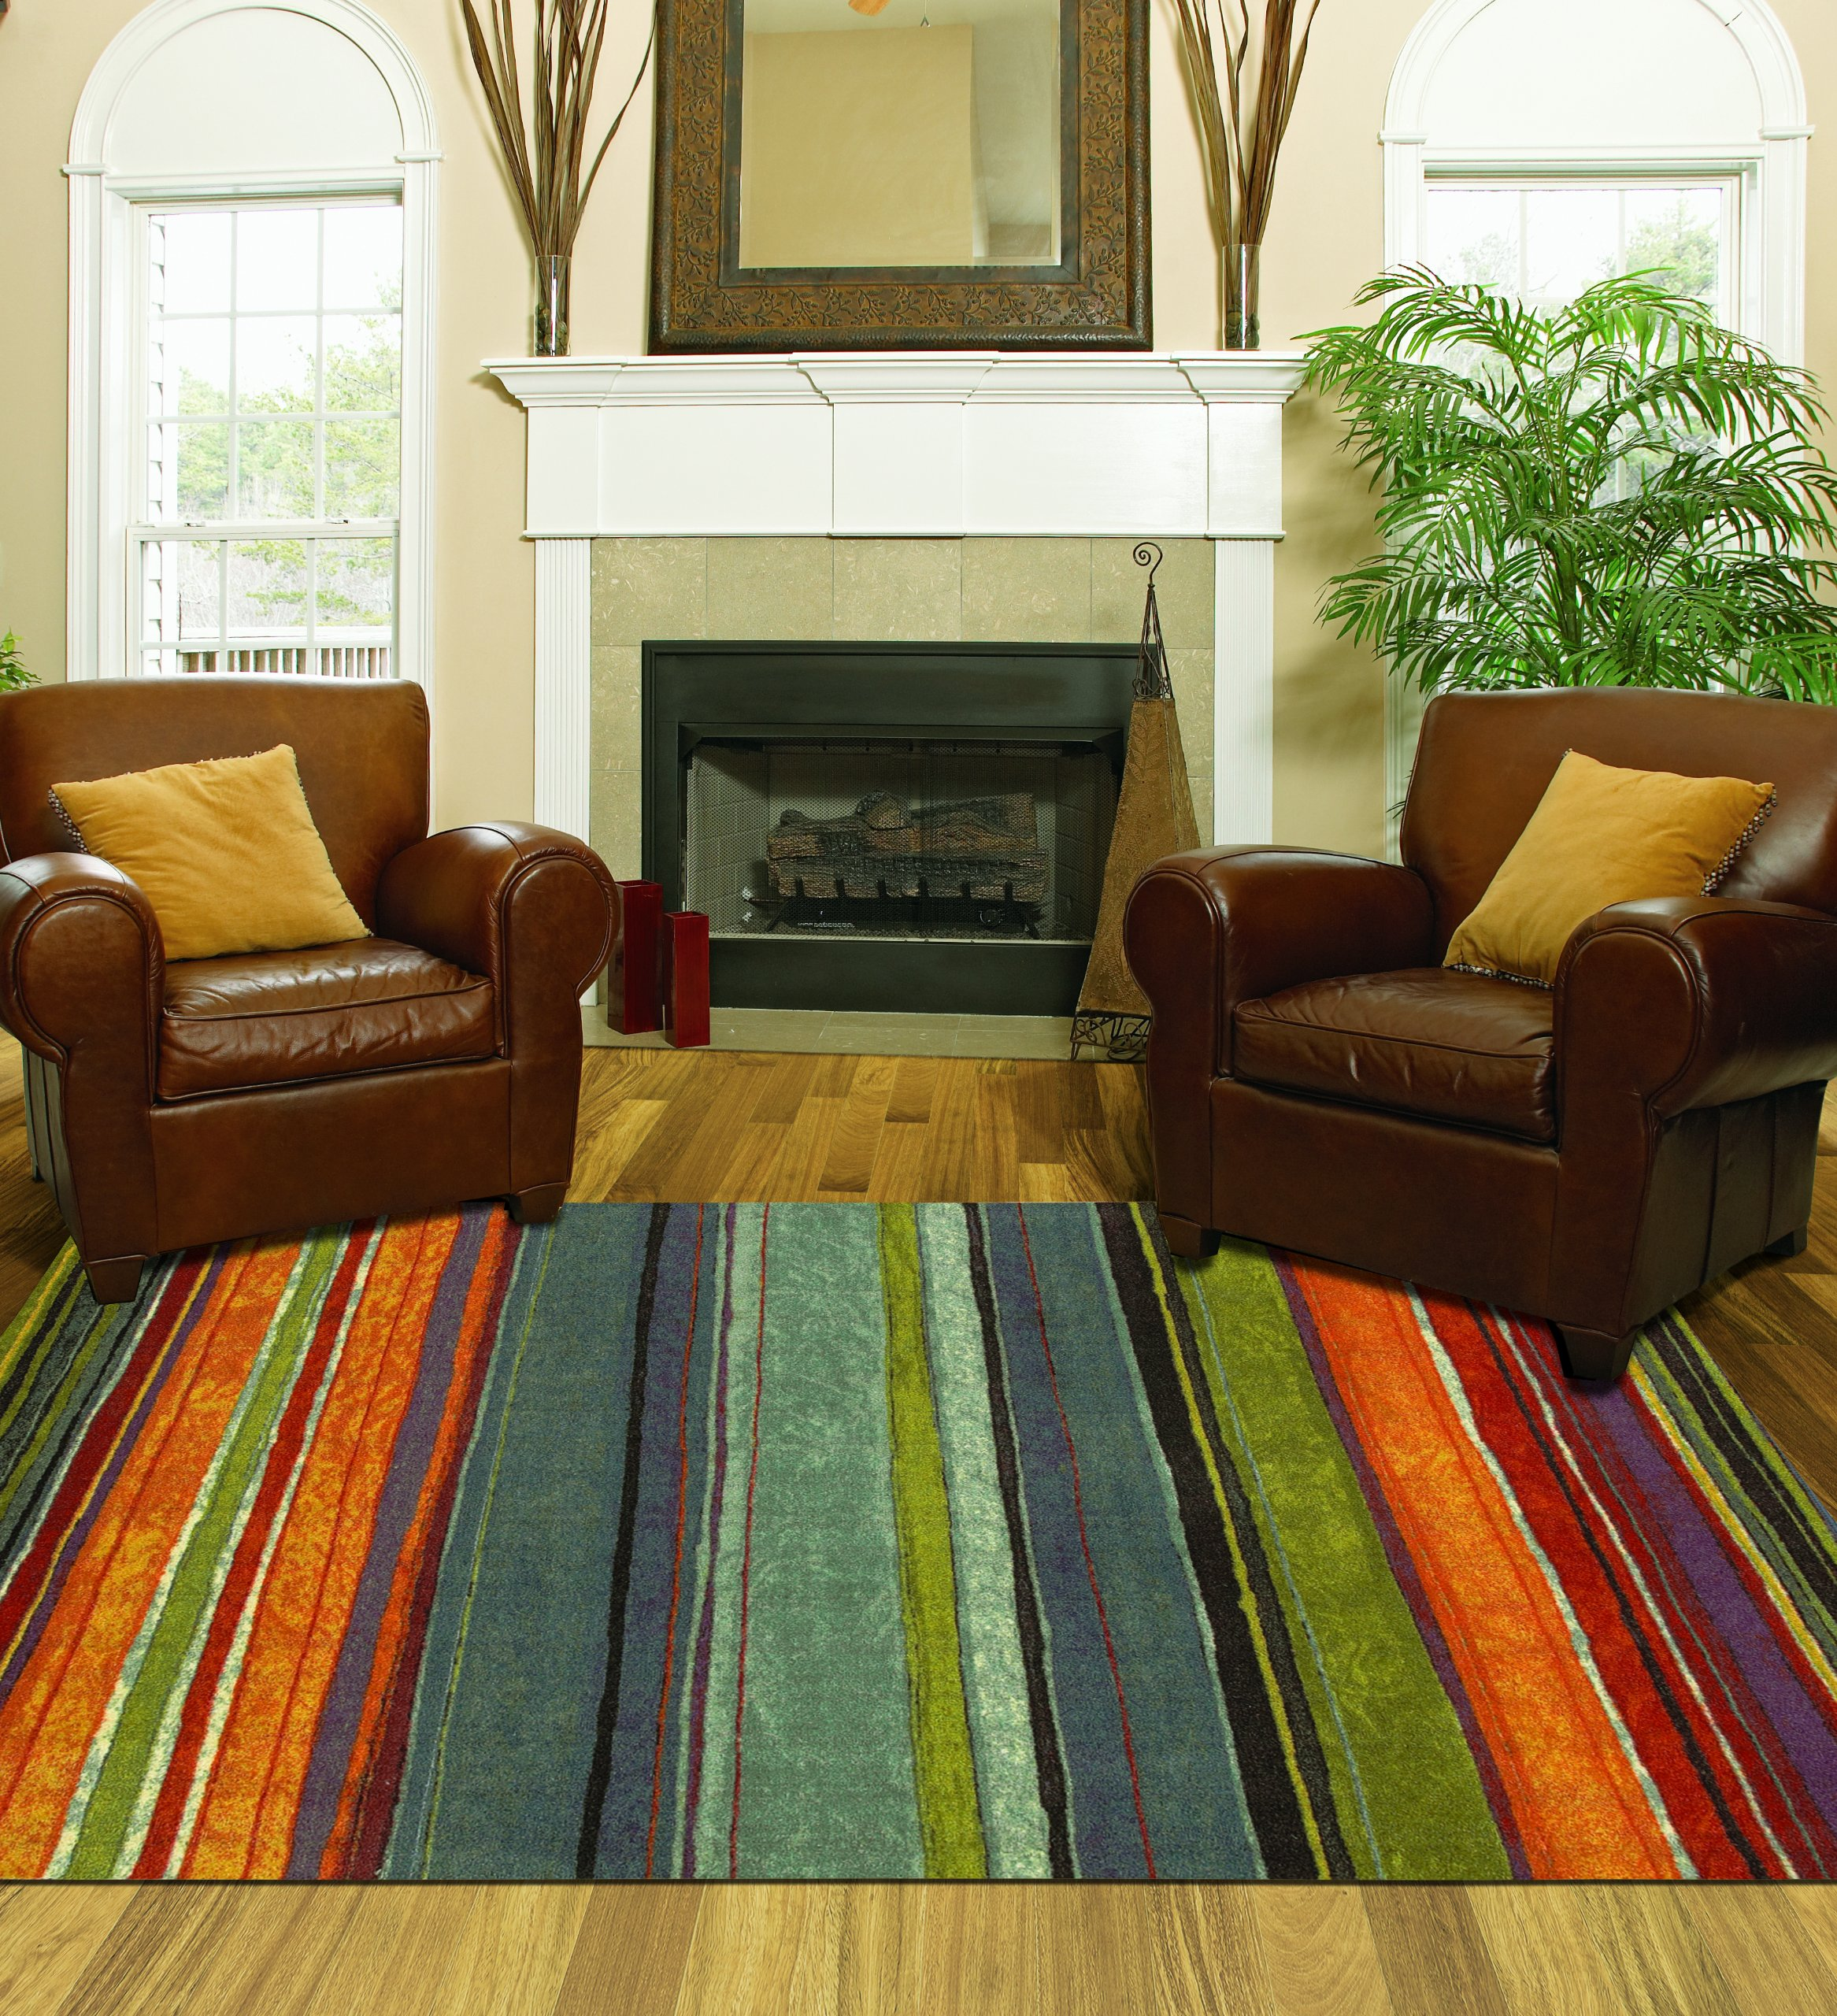 Mohawk Home New Wave Rainbow Printed Rug, 8'x10', Multi by Mohawk Home (Image #1)